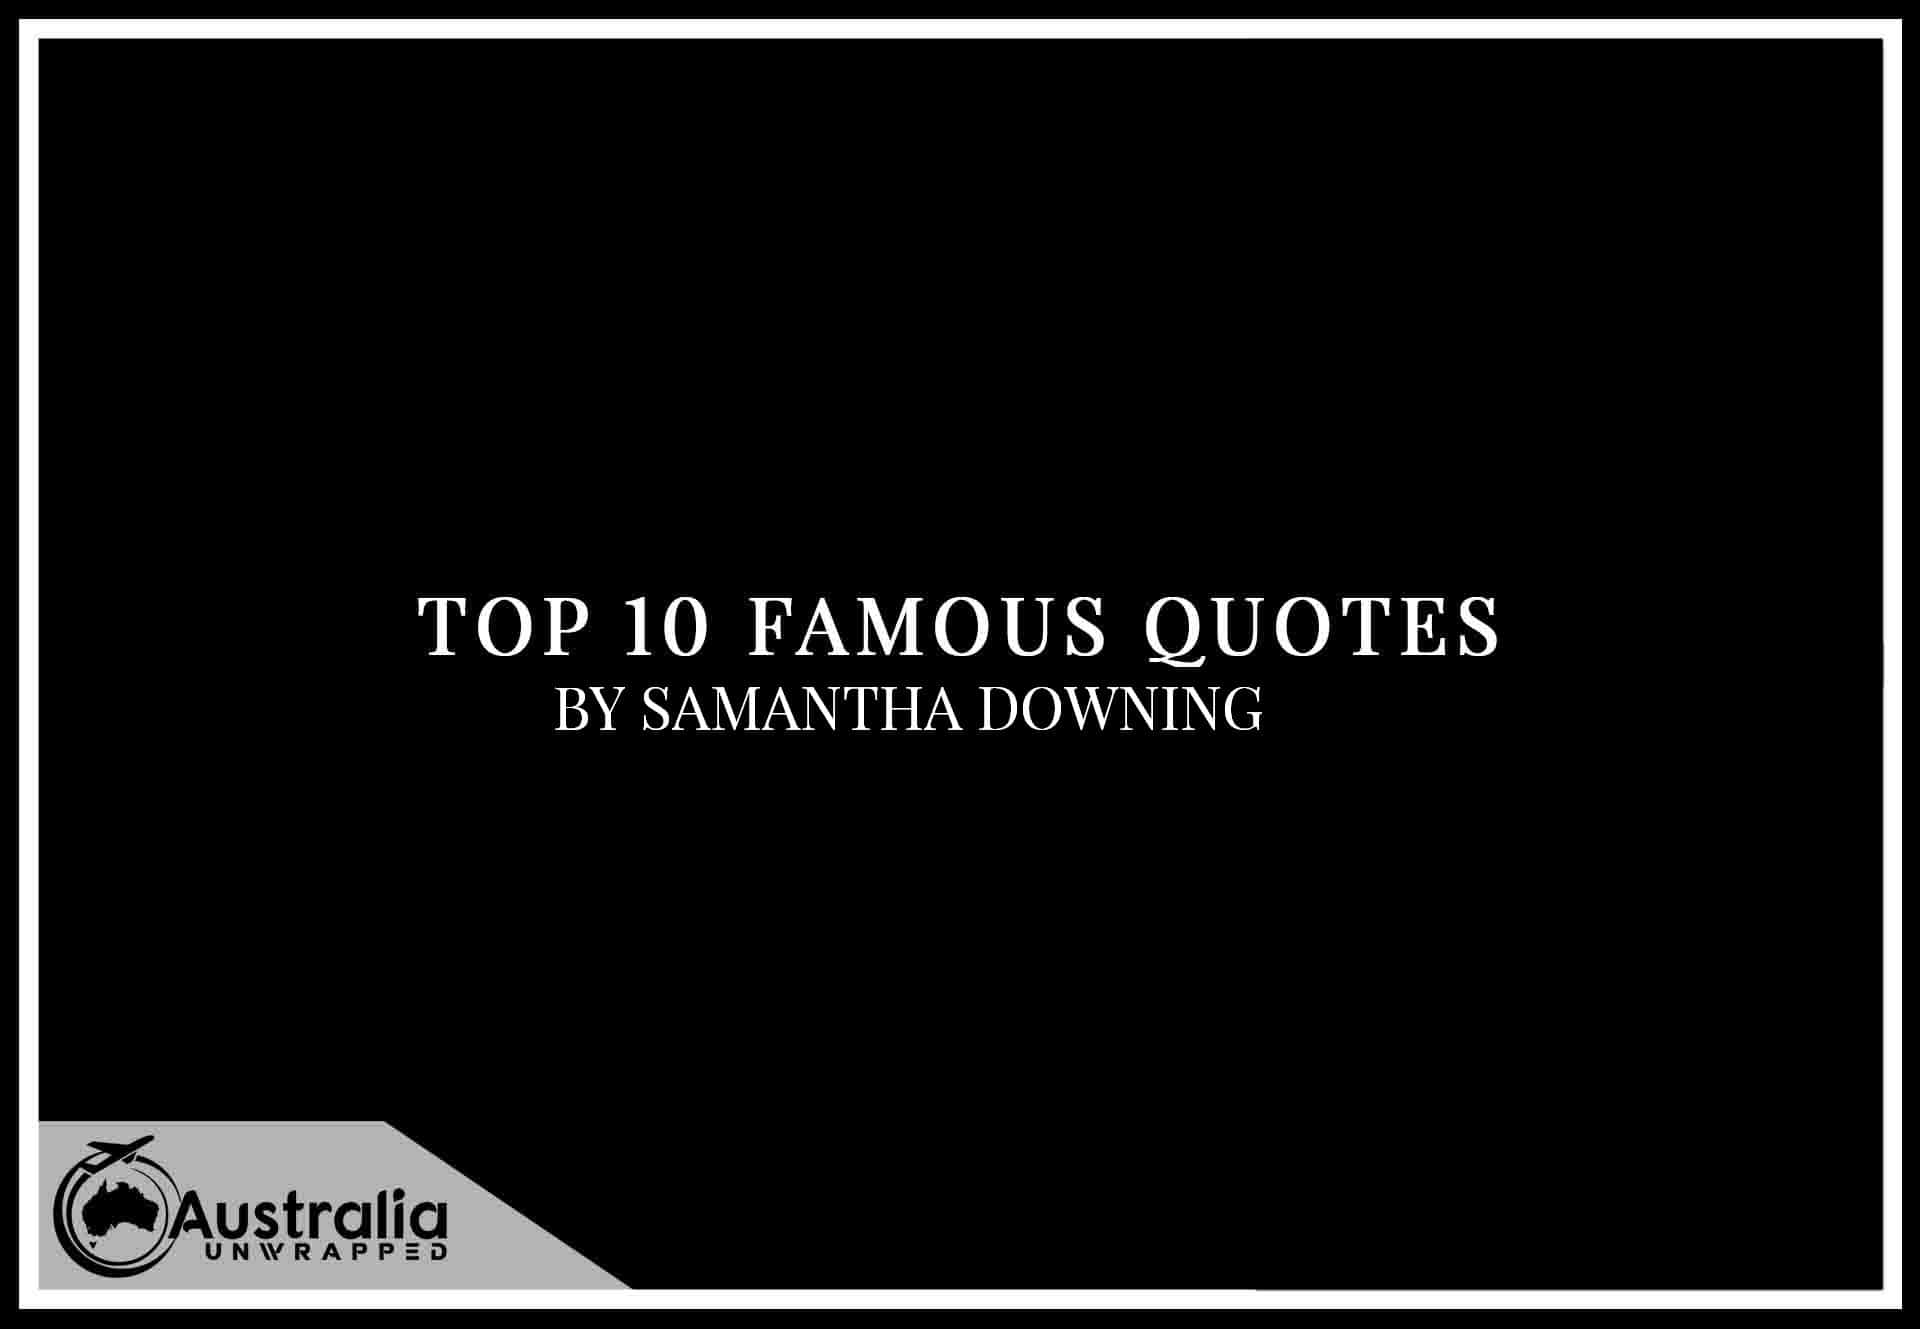 Top 10 Famous Quotes by Author Samantha Downing